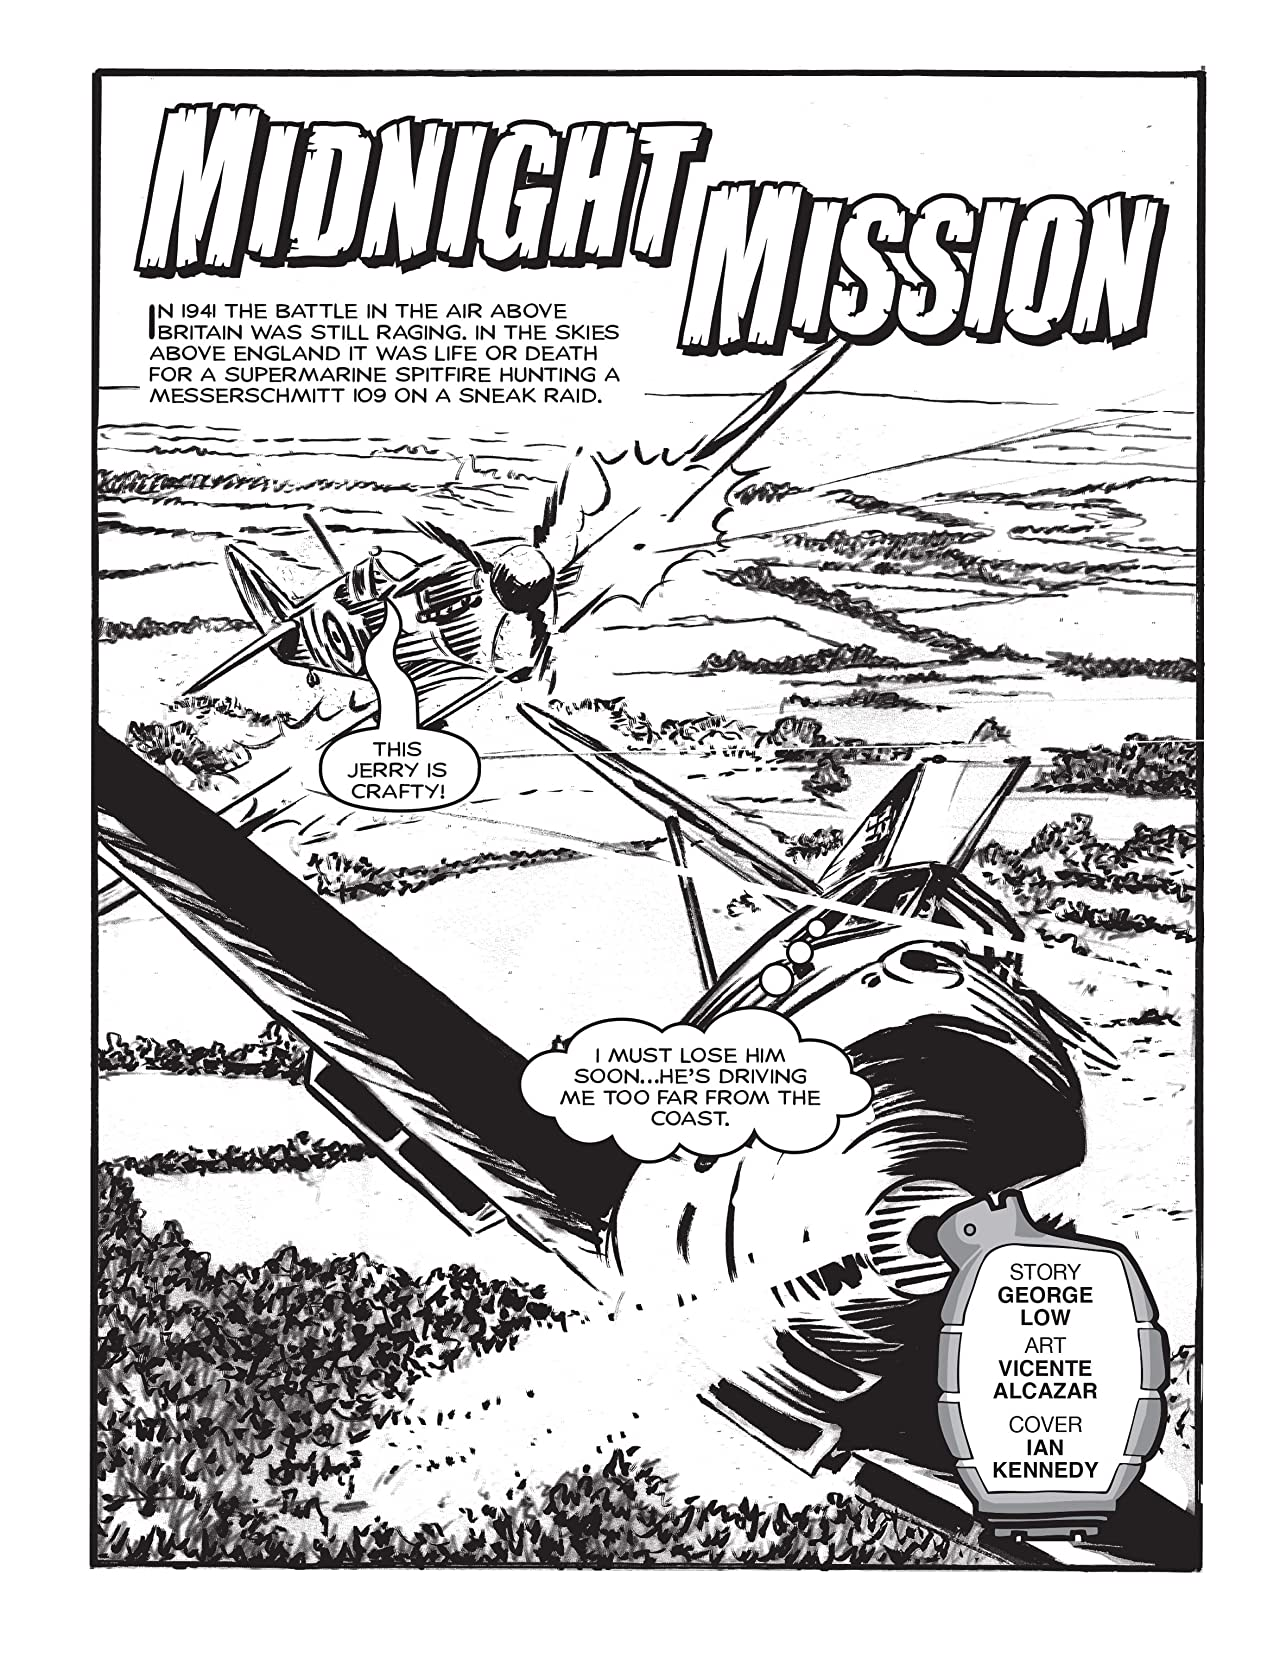 Commando #4955: Midnight Mission